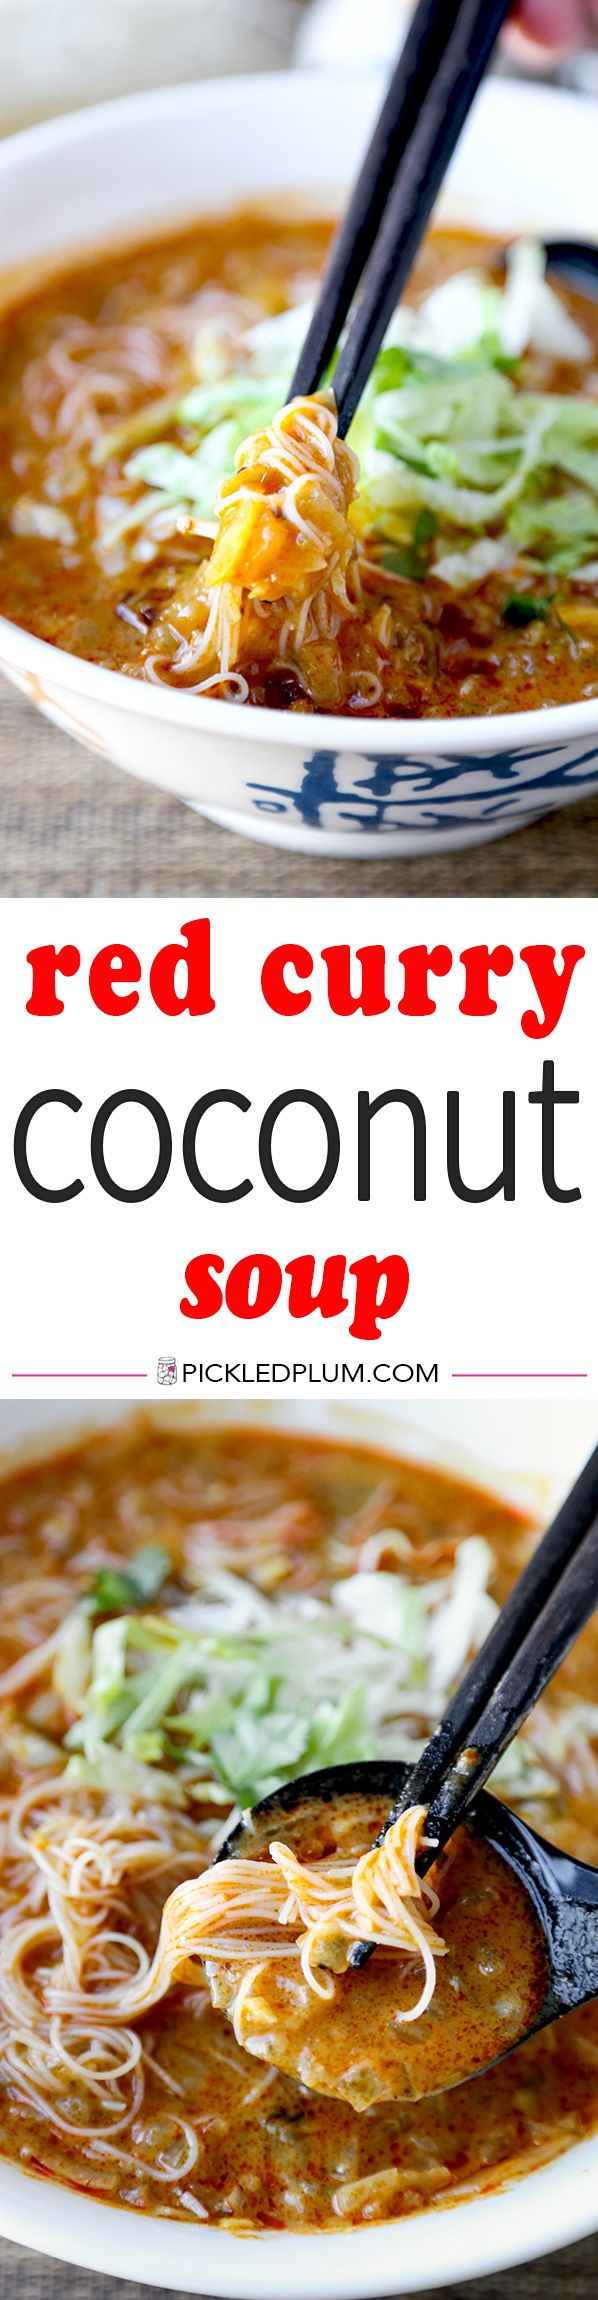 Red Curry Coconut Soup - Take a trip to Southeast Asia with this hot, smoky, sour and sweet red coconut curry soup. This is one amazing noodle soup you won't be able to put down! Easy, Thai, noodles, soup, recipe | pickledplum.com